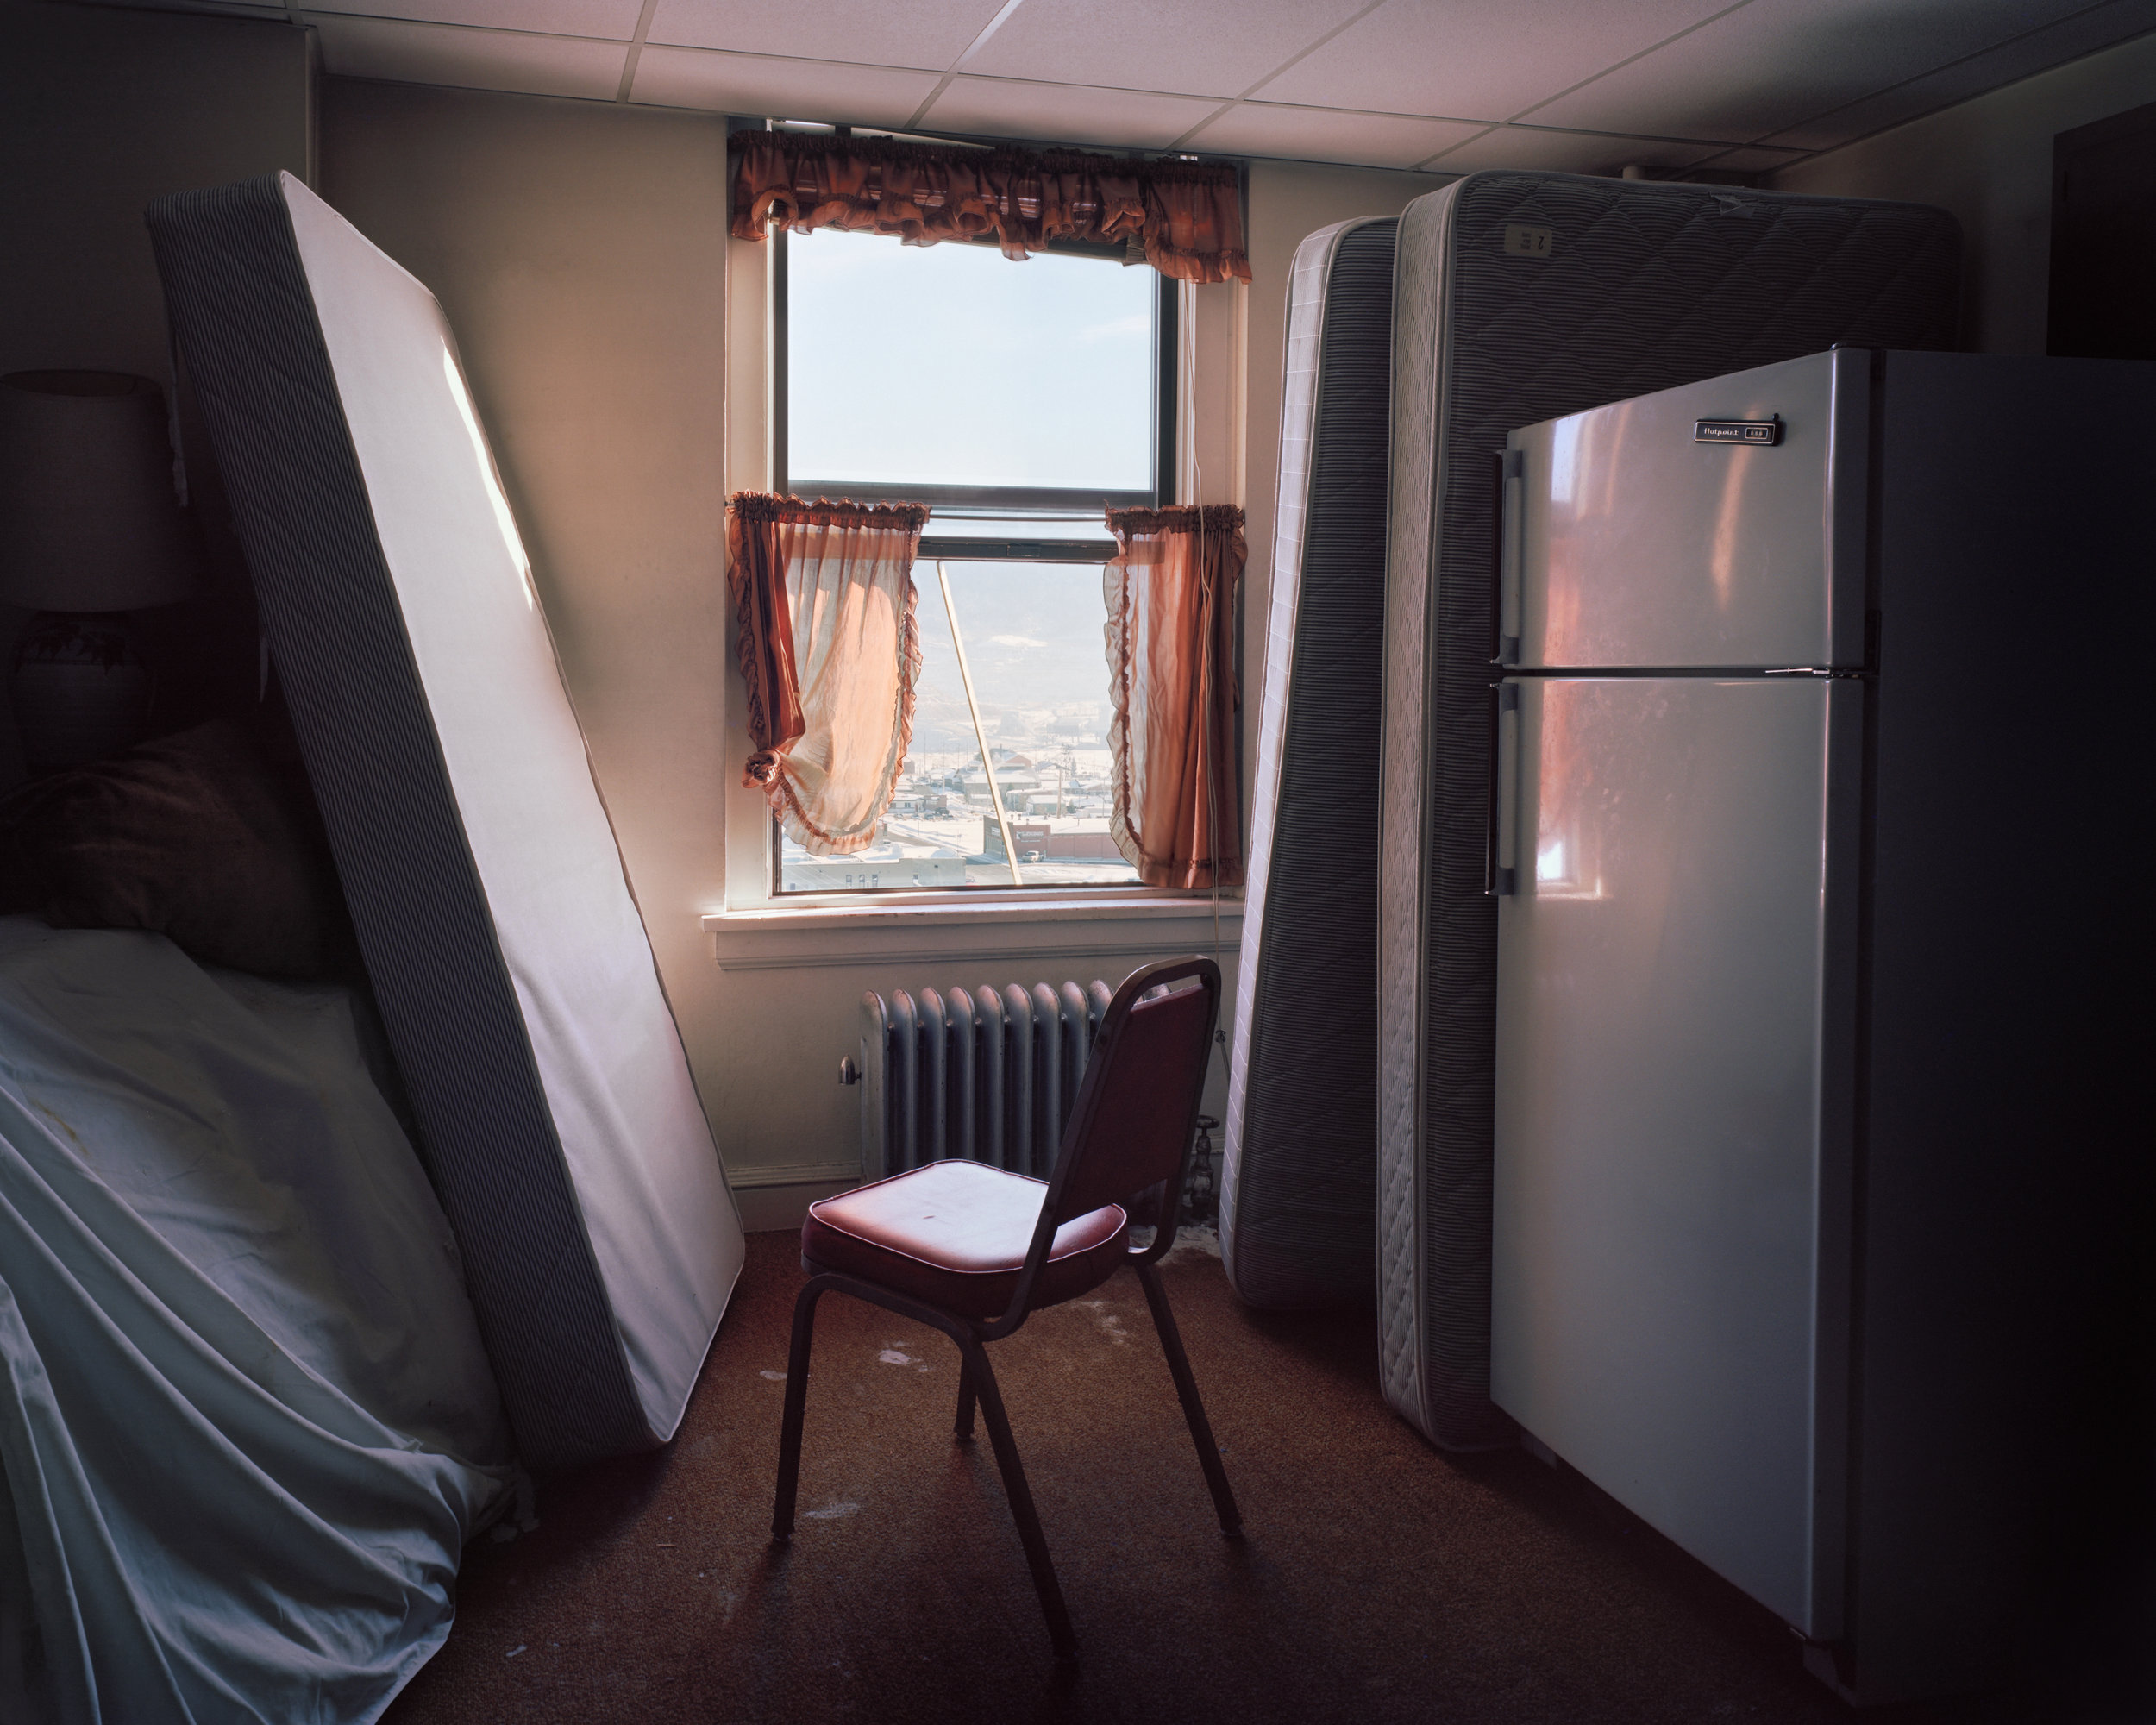 MCNAIR EVANS   Hotel Finlen, Room 621, 2017   Archival Pigment Print  AVAILABLE SIZES AND EDITIONS  20 x 25 in., ed. 5 + 1AP   32 x 40 in., ed. 5 + 1AP 40 x 50 in. ed. 3 + 1AP